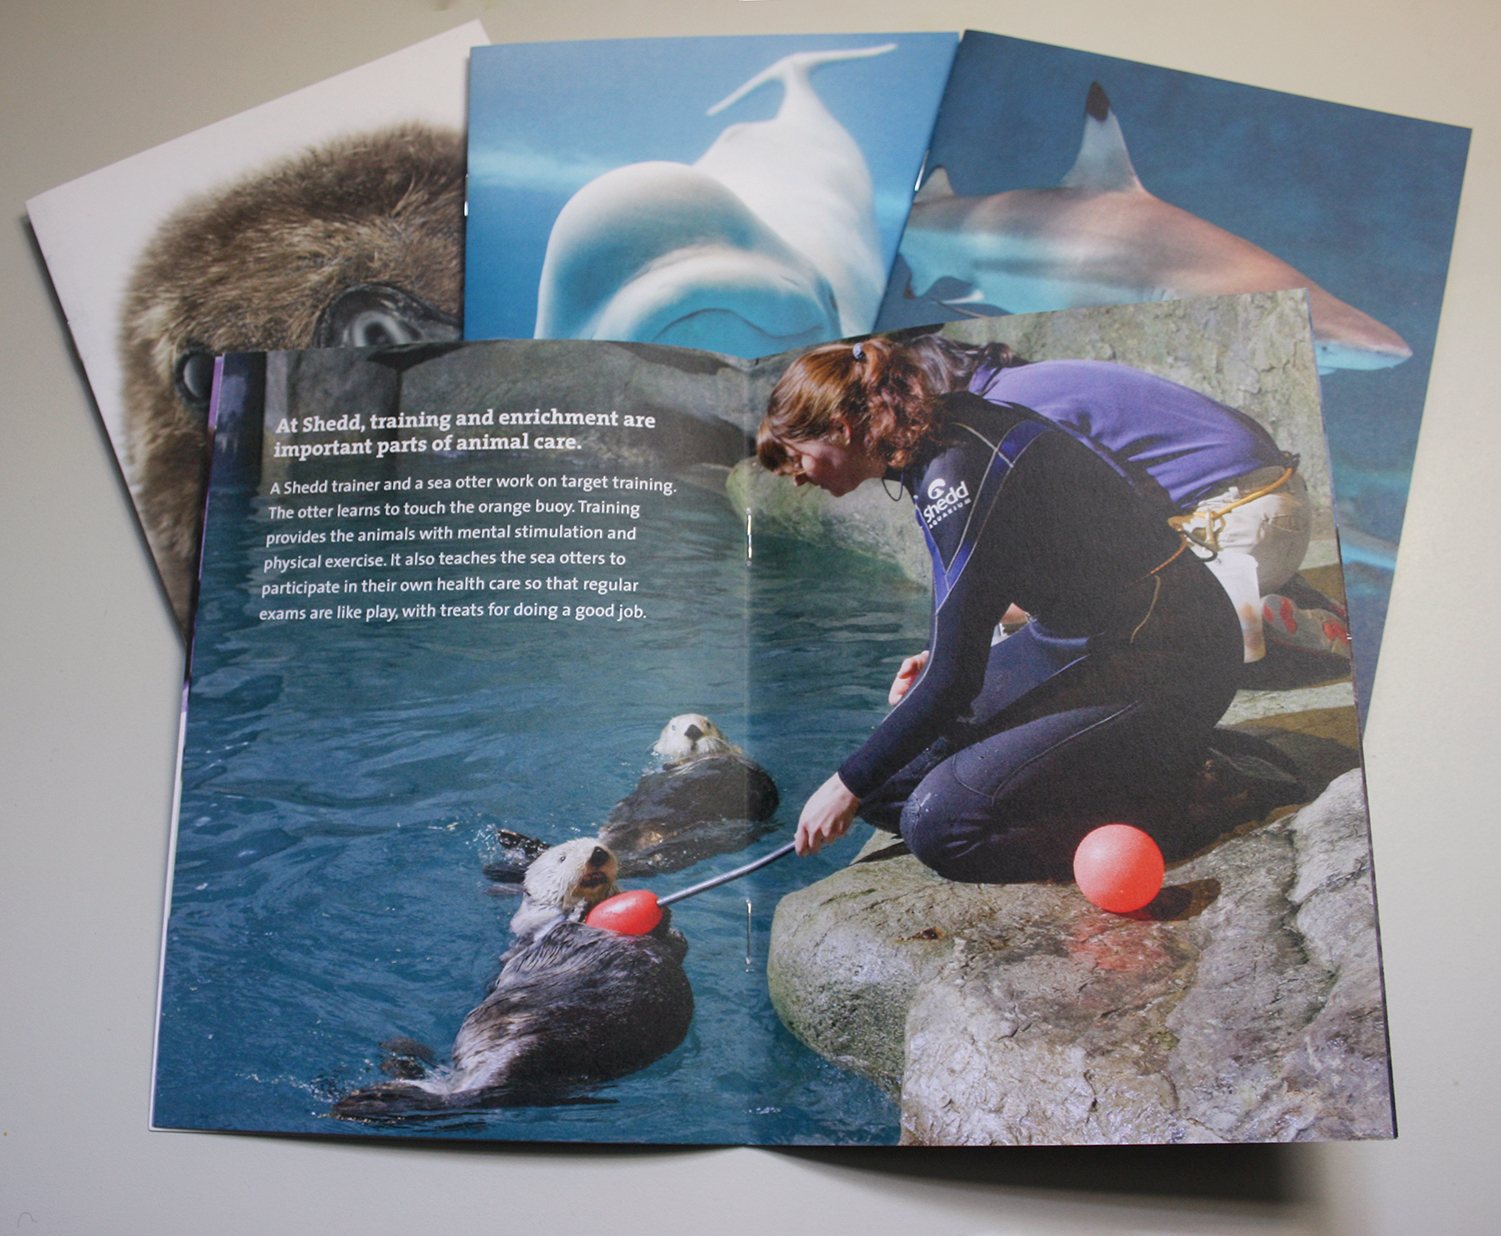 A booklet is opened to a full-spread image of a trainer holding out a stick with an orange buoy on the end for a sea otter to touch. Descriptive text in the top left corner describes training and enrichment practices at Shedd.